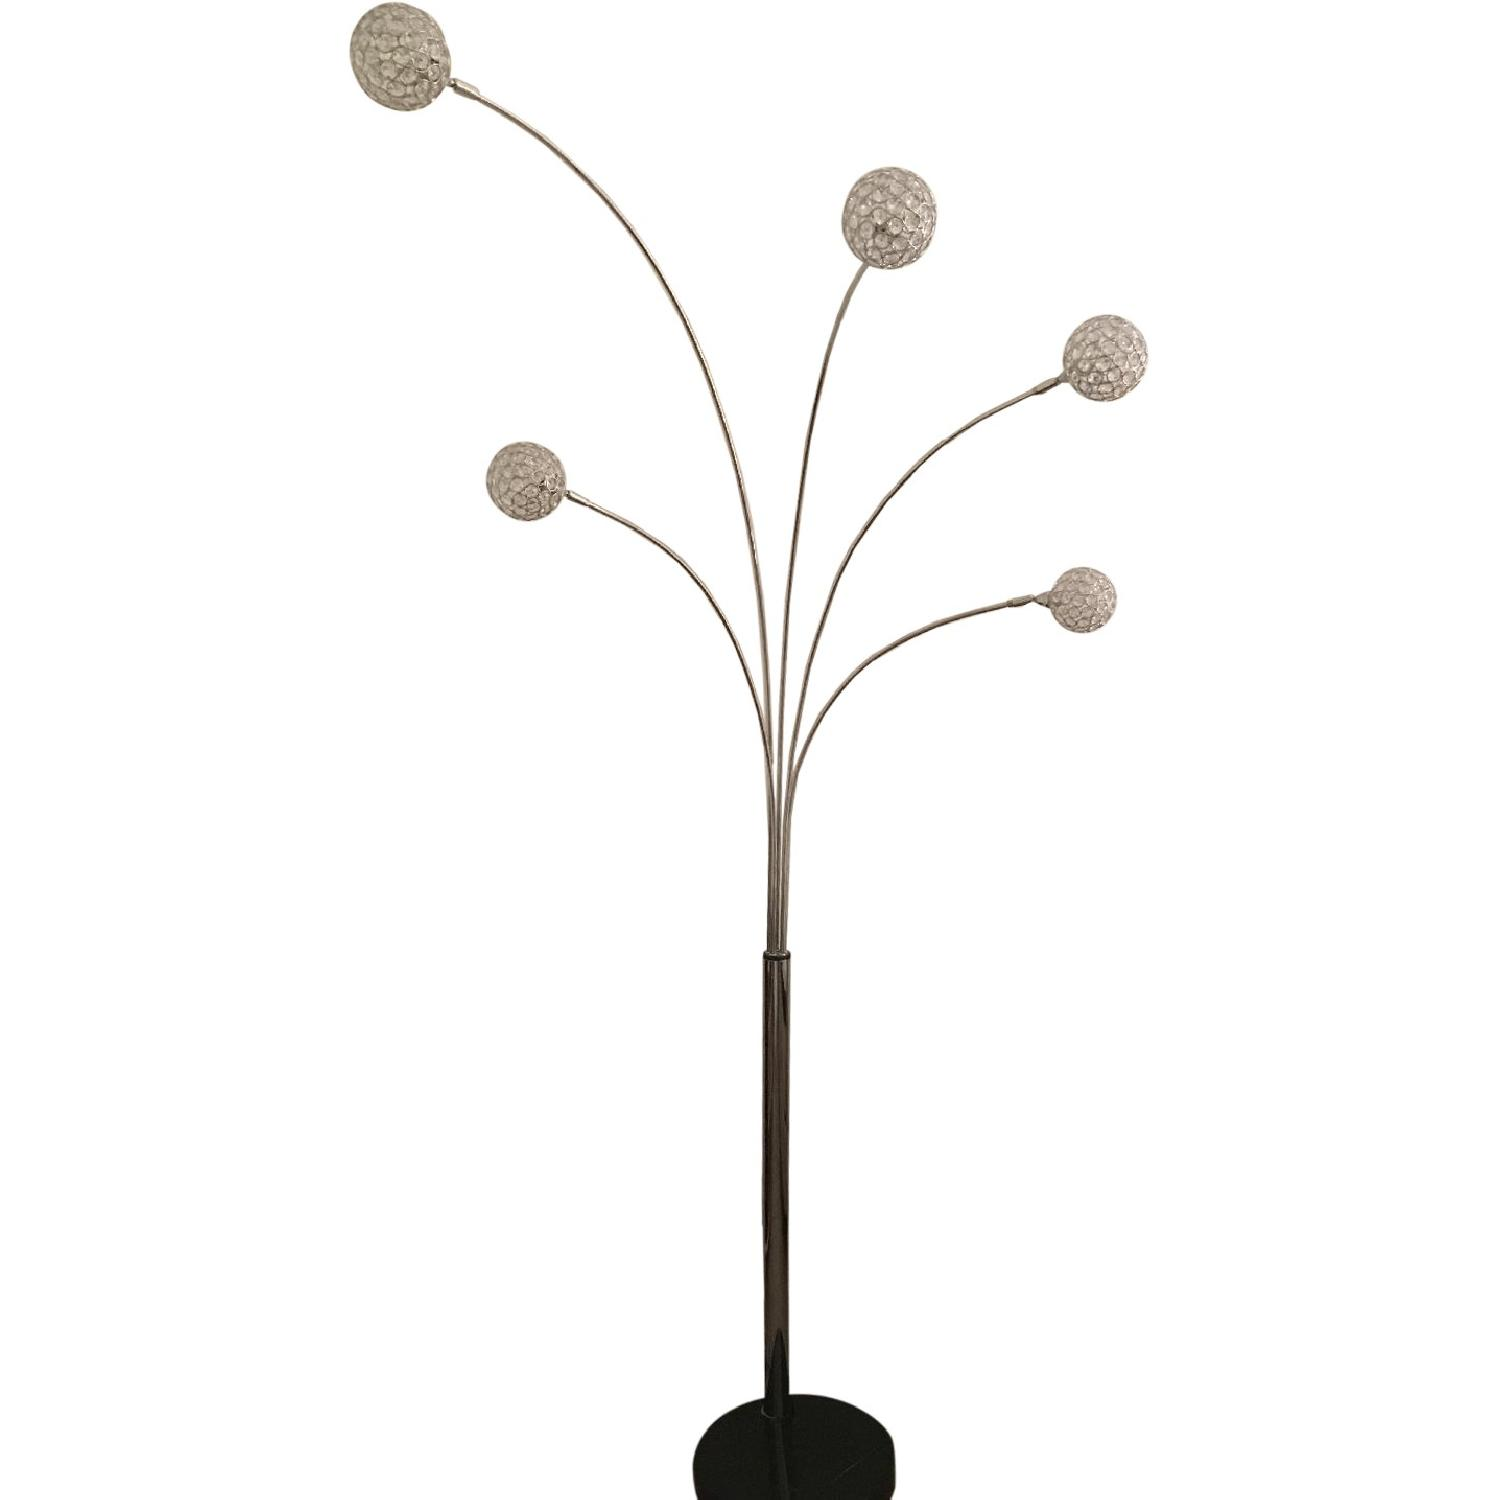 Possini Euro Design Allegra Crystal Ball Arc Floor Lamp AptDeco